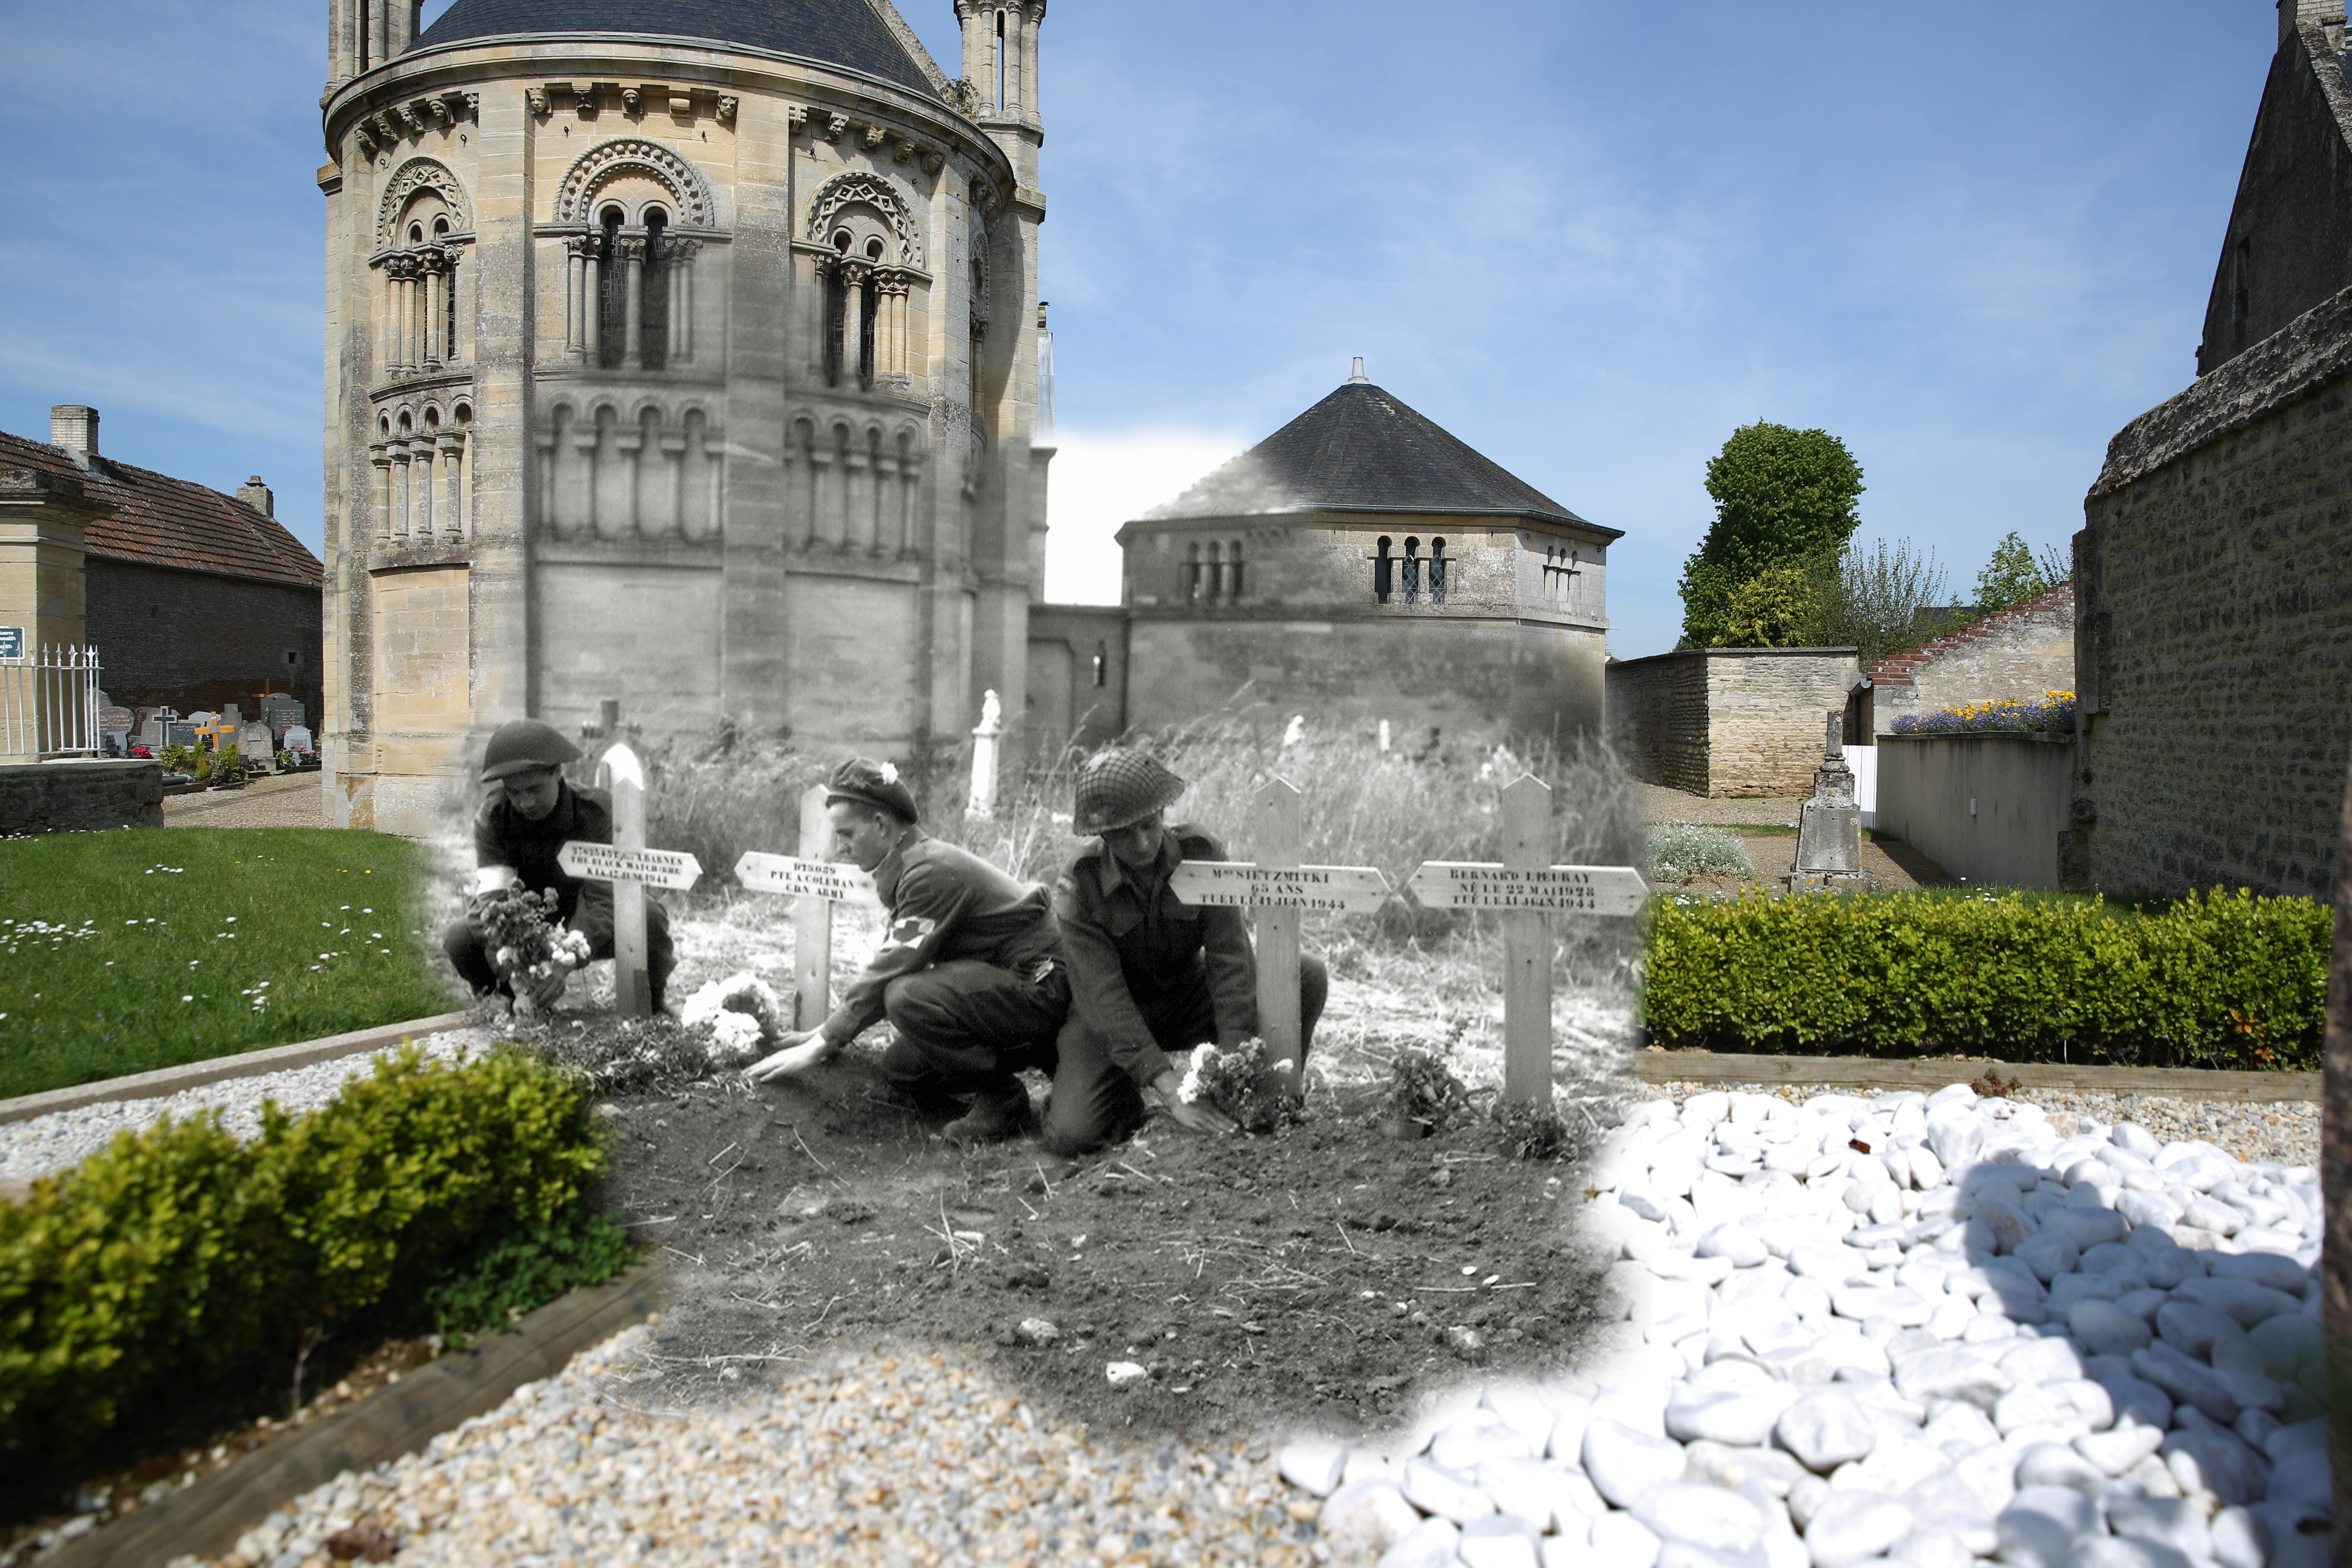 A view of the graveyard with the church of Saint Georges de Basly in the background on May 5, 2014 in Basly, France. Overlay: Three soldiers of the 23rd Field Ambulance of the 3rd Canadian Infantry Division place flowers on graves on June 1944.